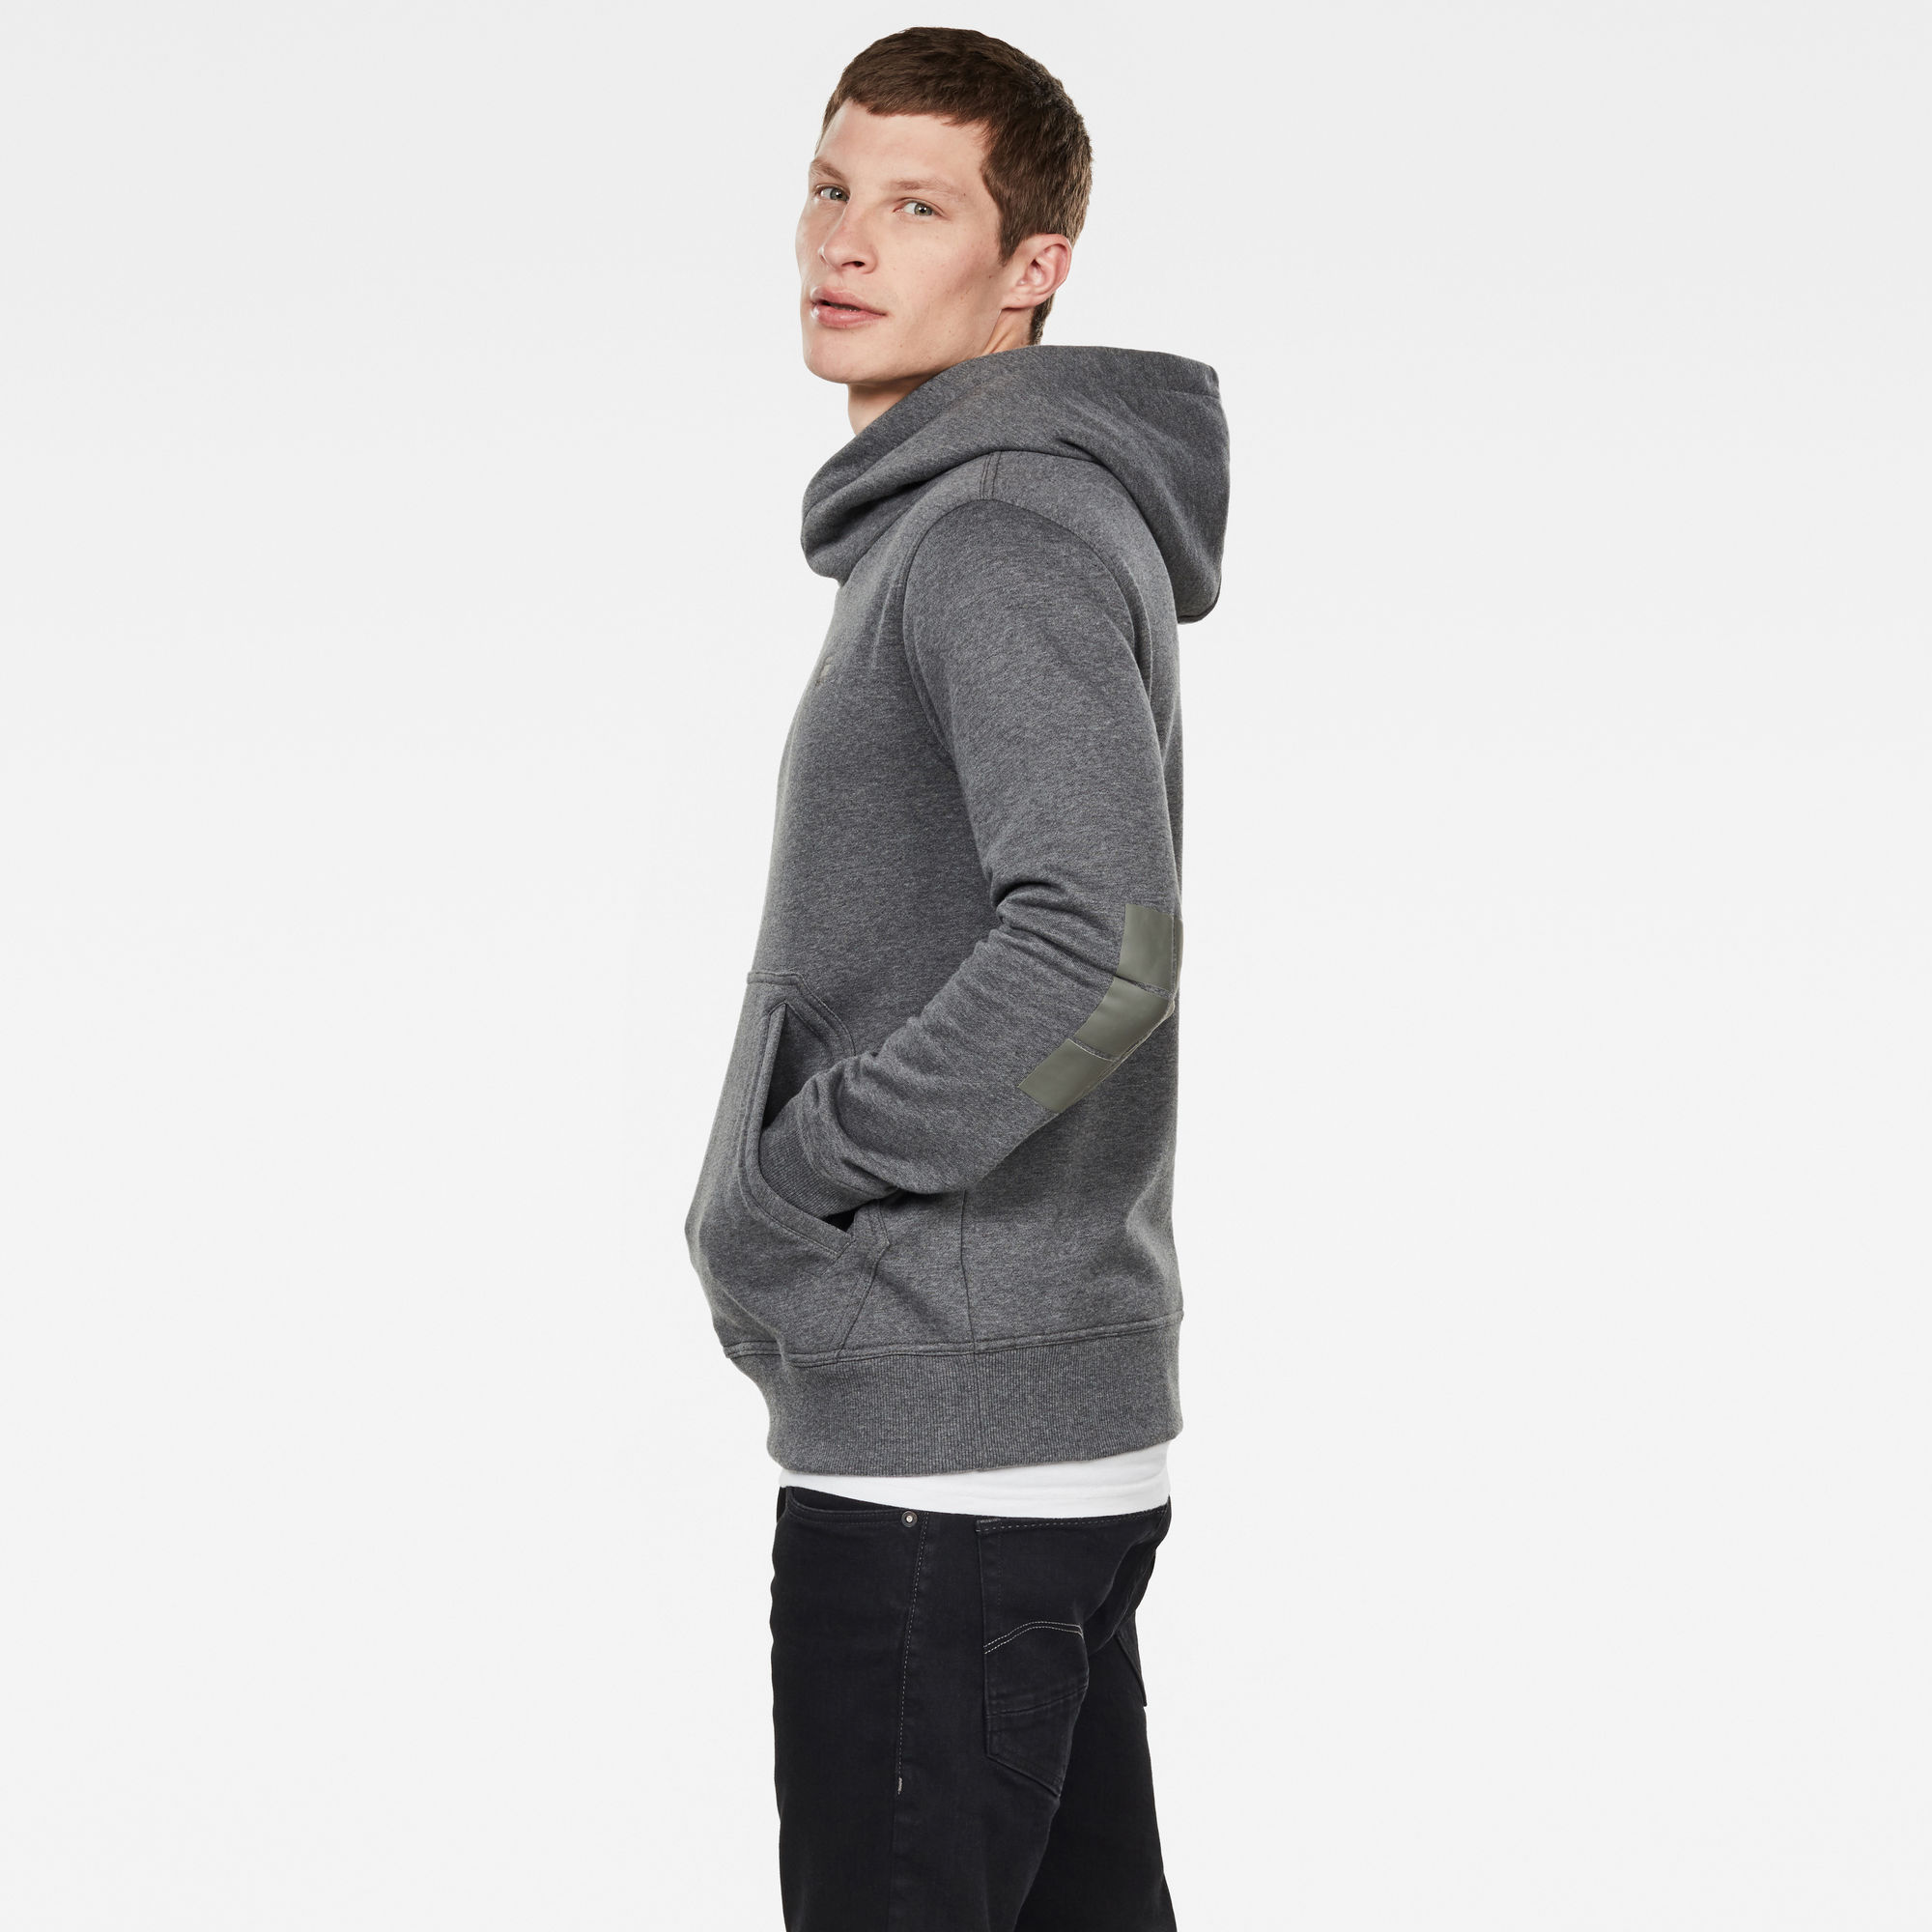 Aero Patched On Pocket Hoodie